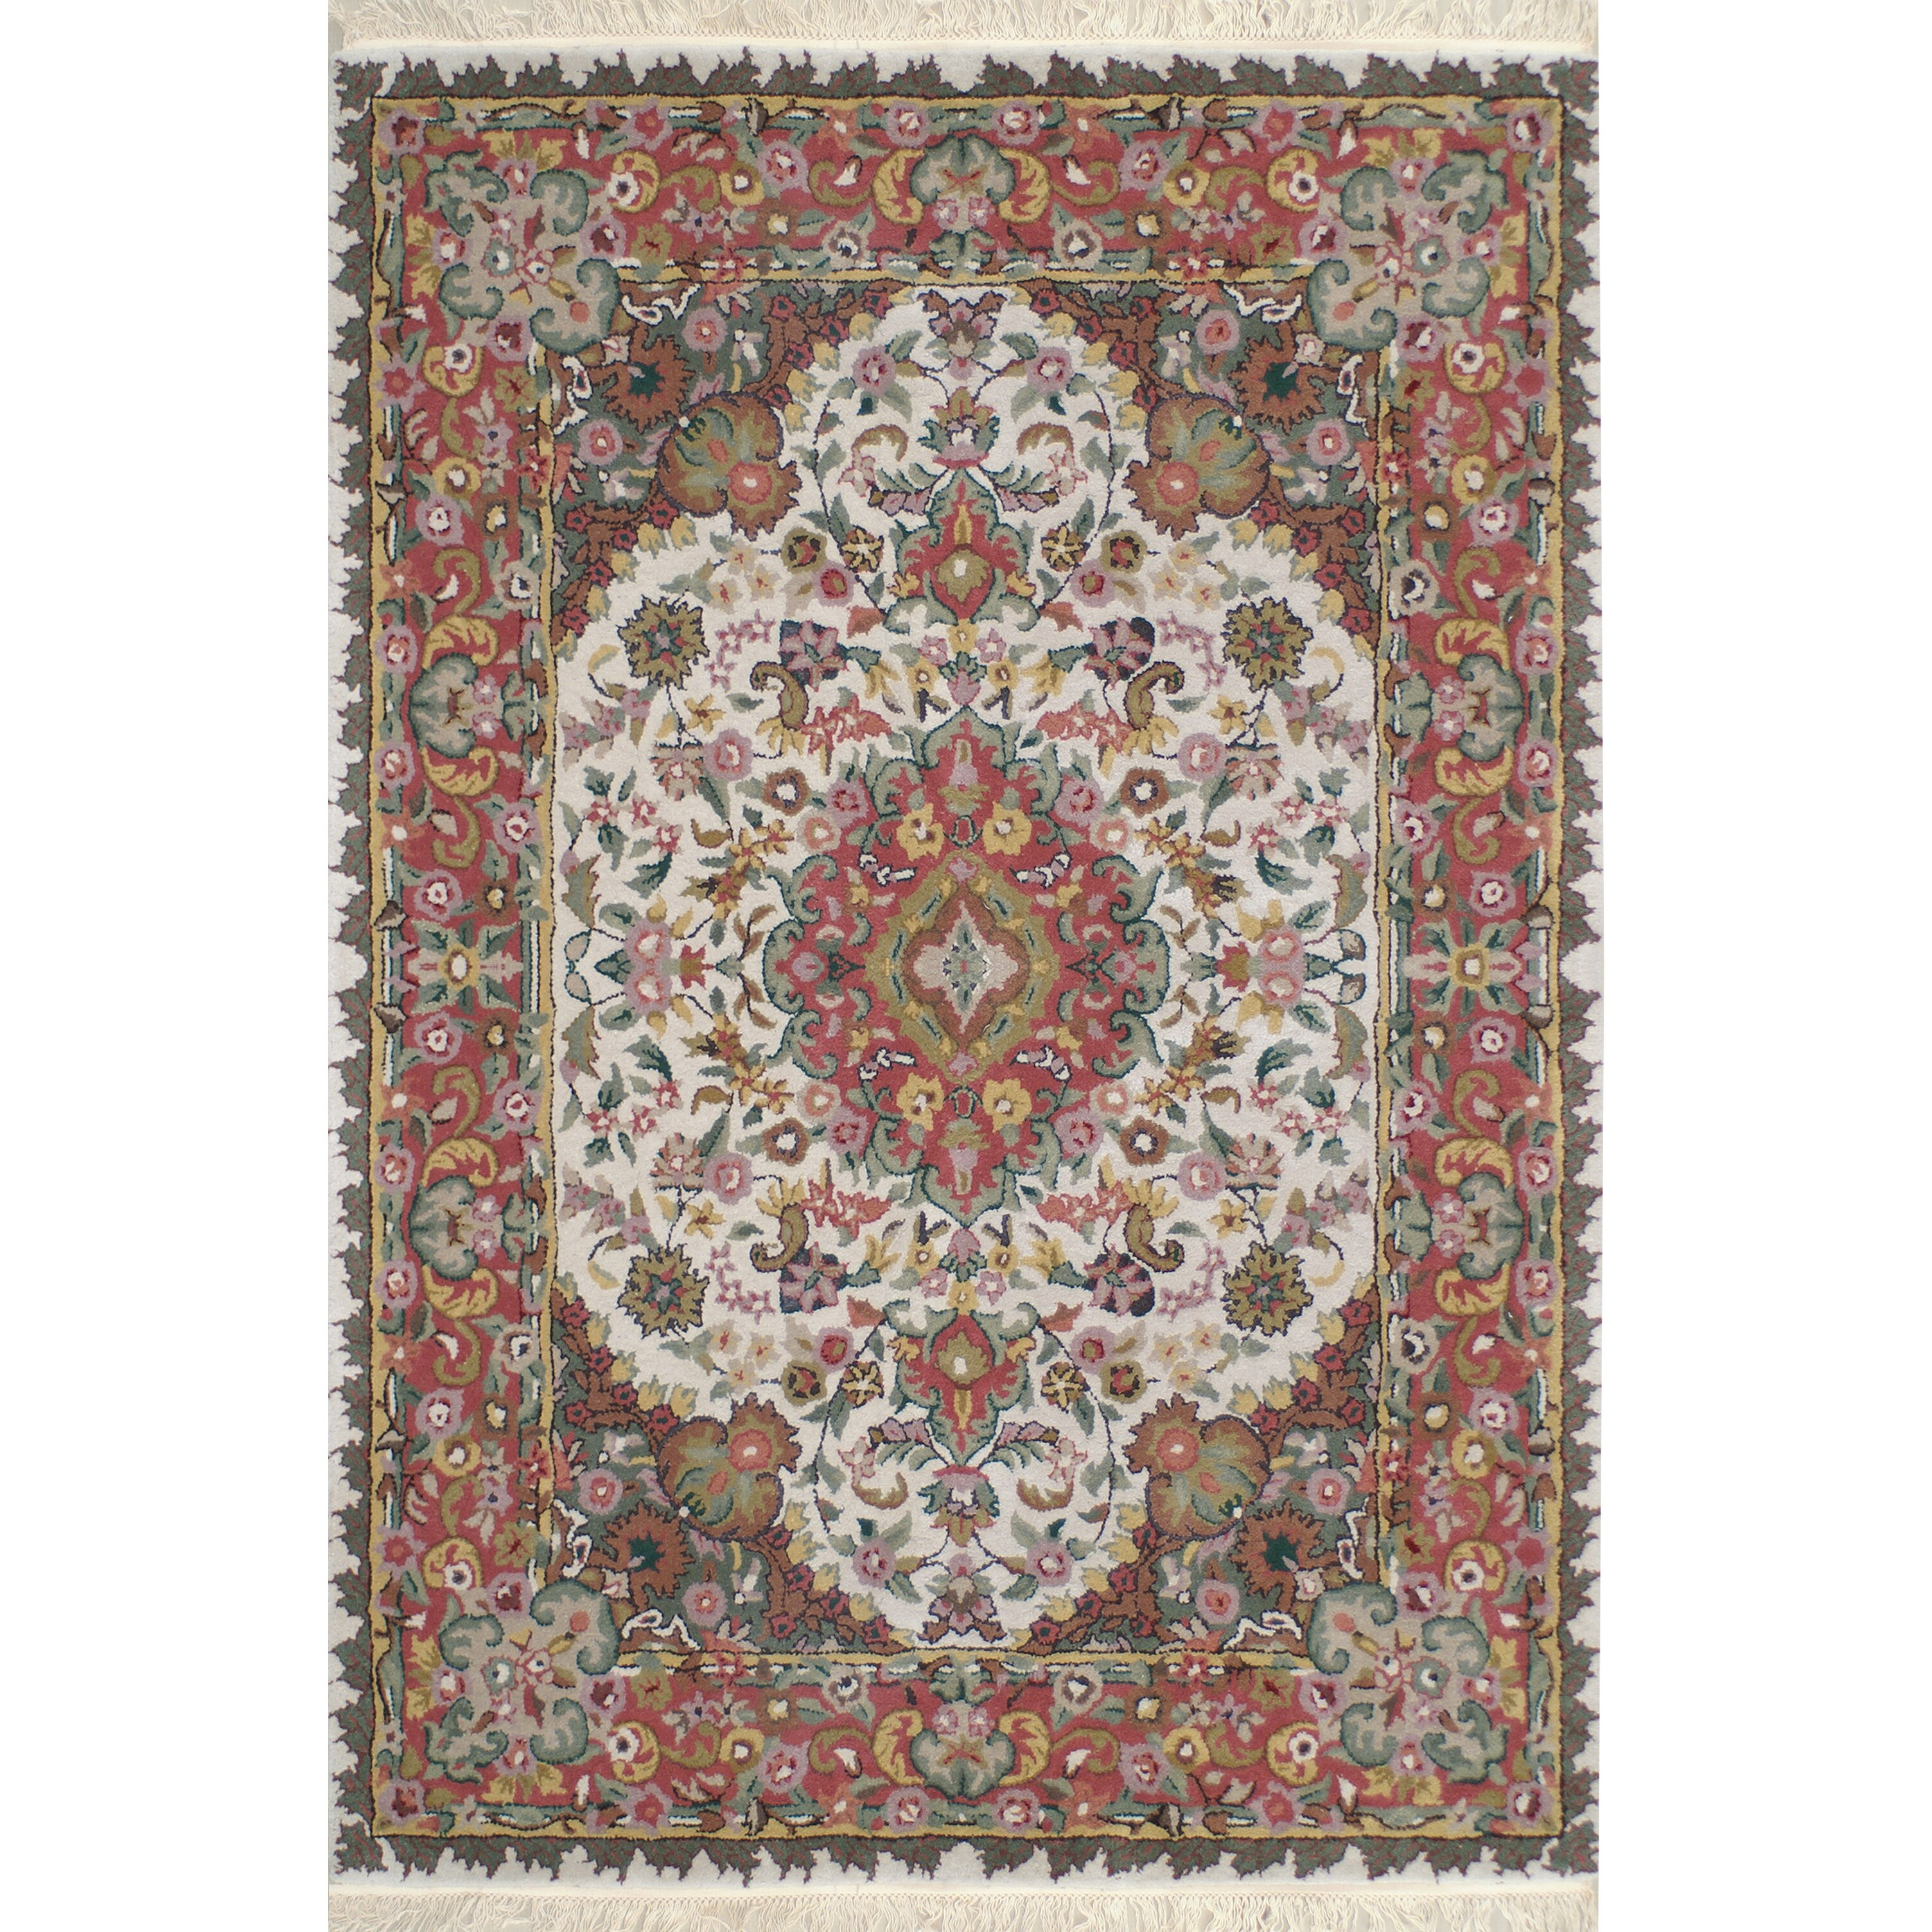 American Home Rug Co American Home Classic Tabriz Antique